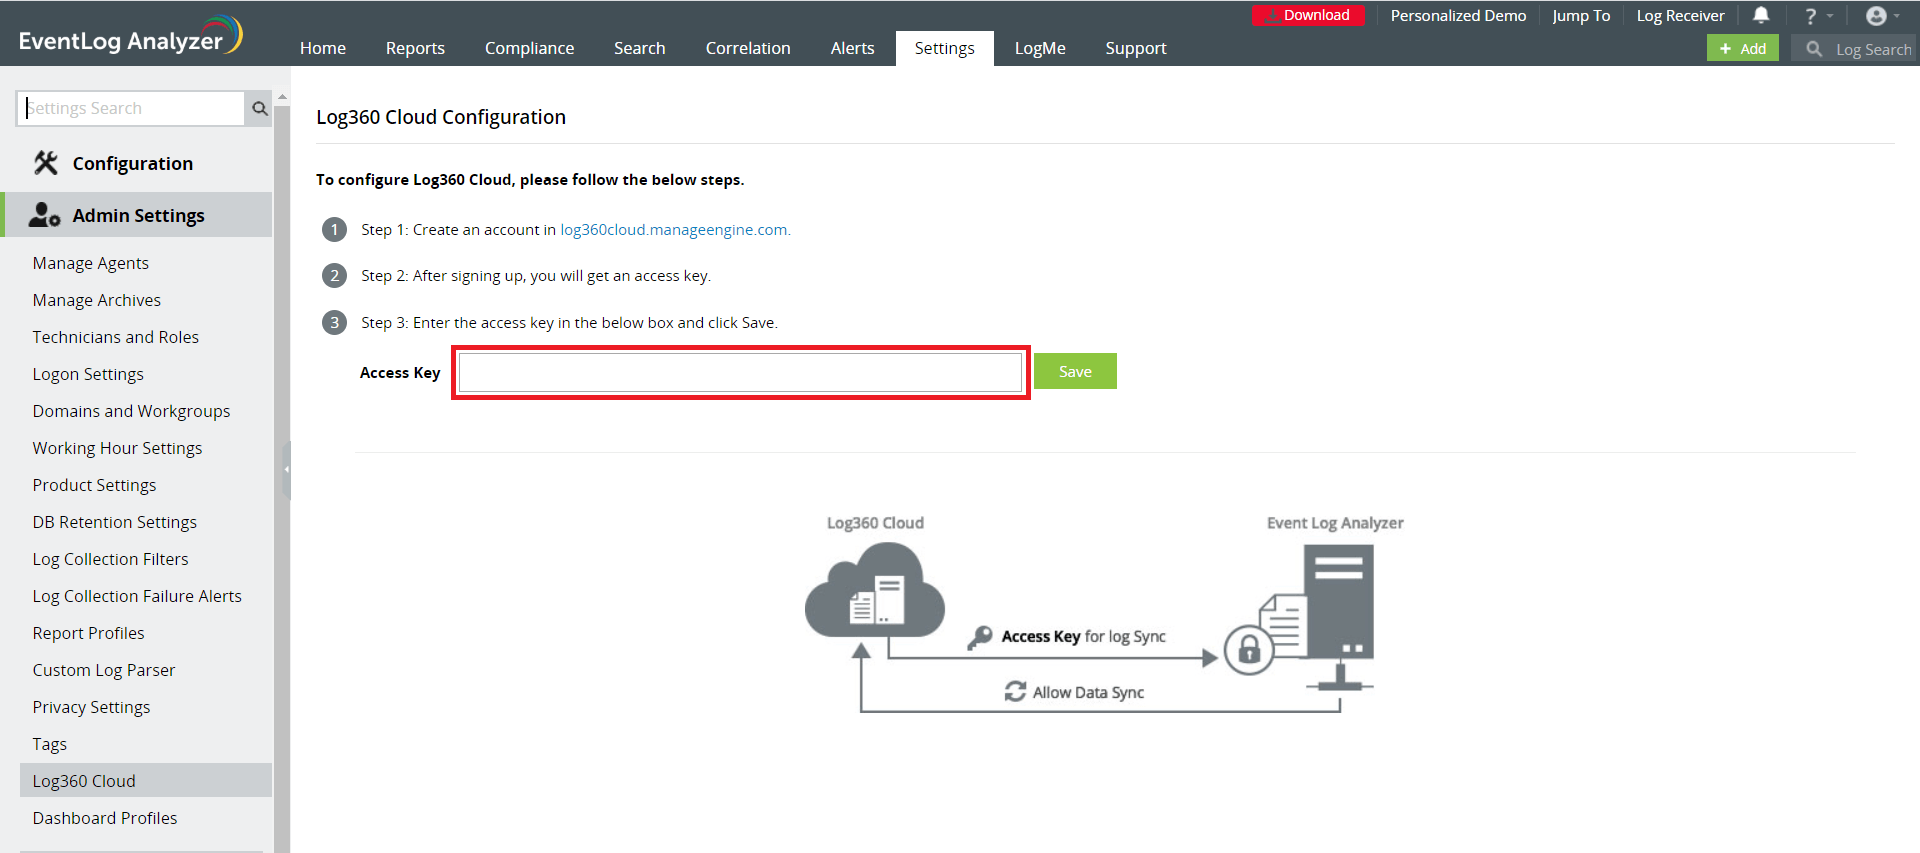 Log360 Cloud Security Access Key